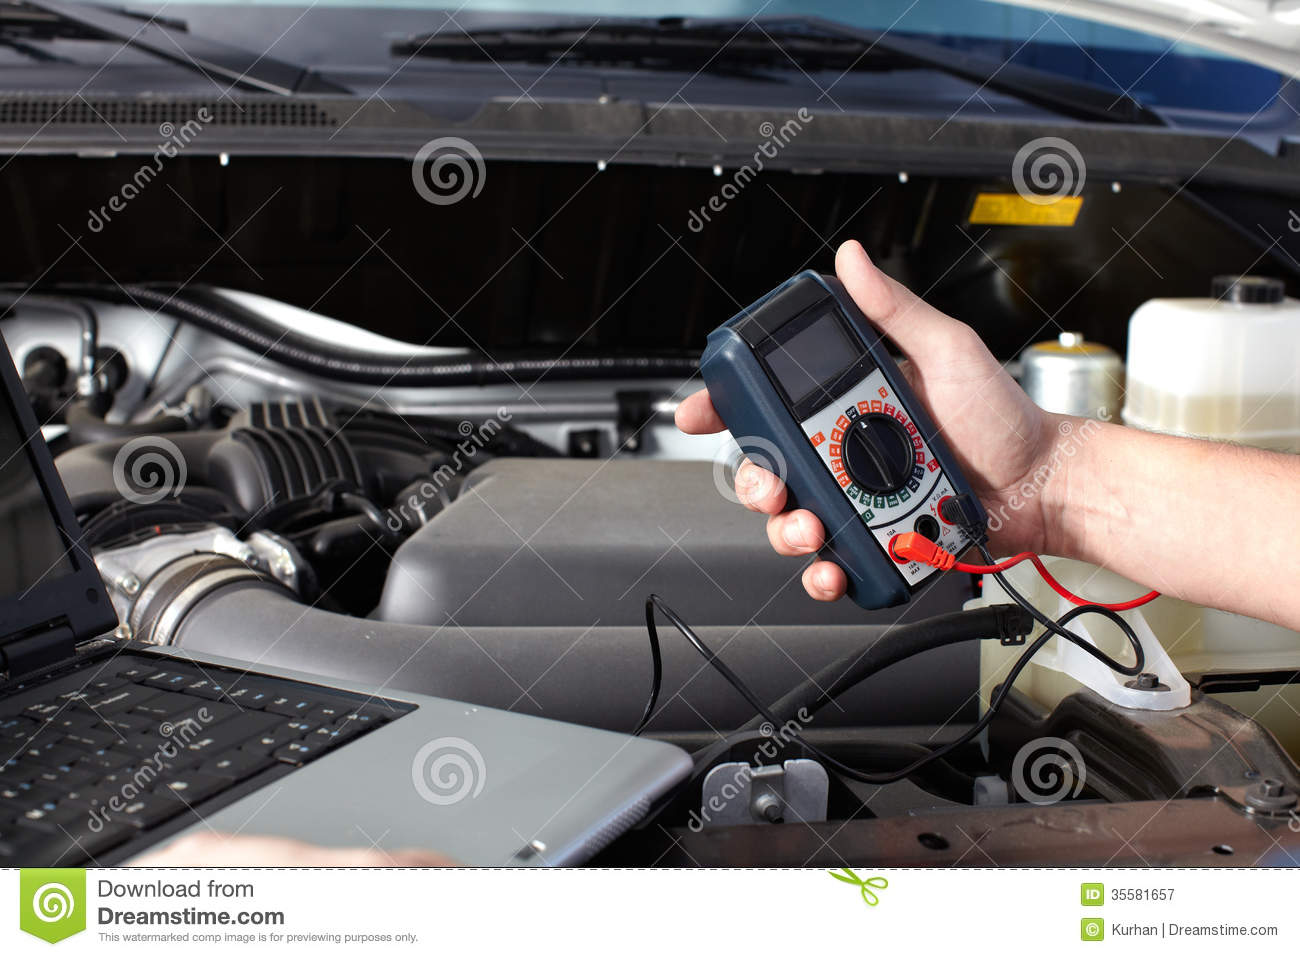 car-mechanic-working-auto-repair-service-professional-35581657.jpg